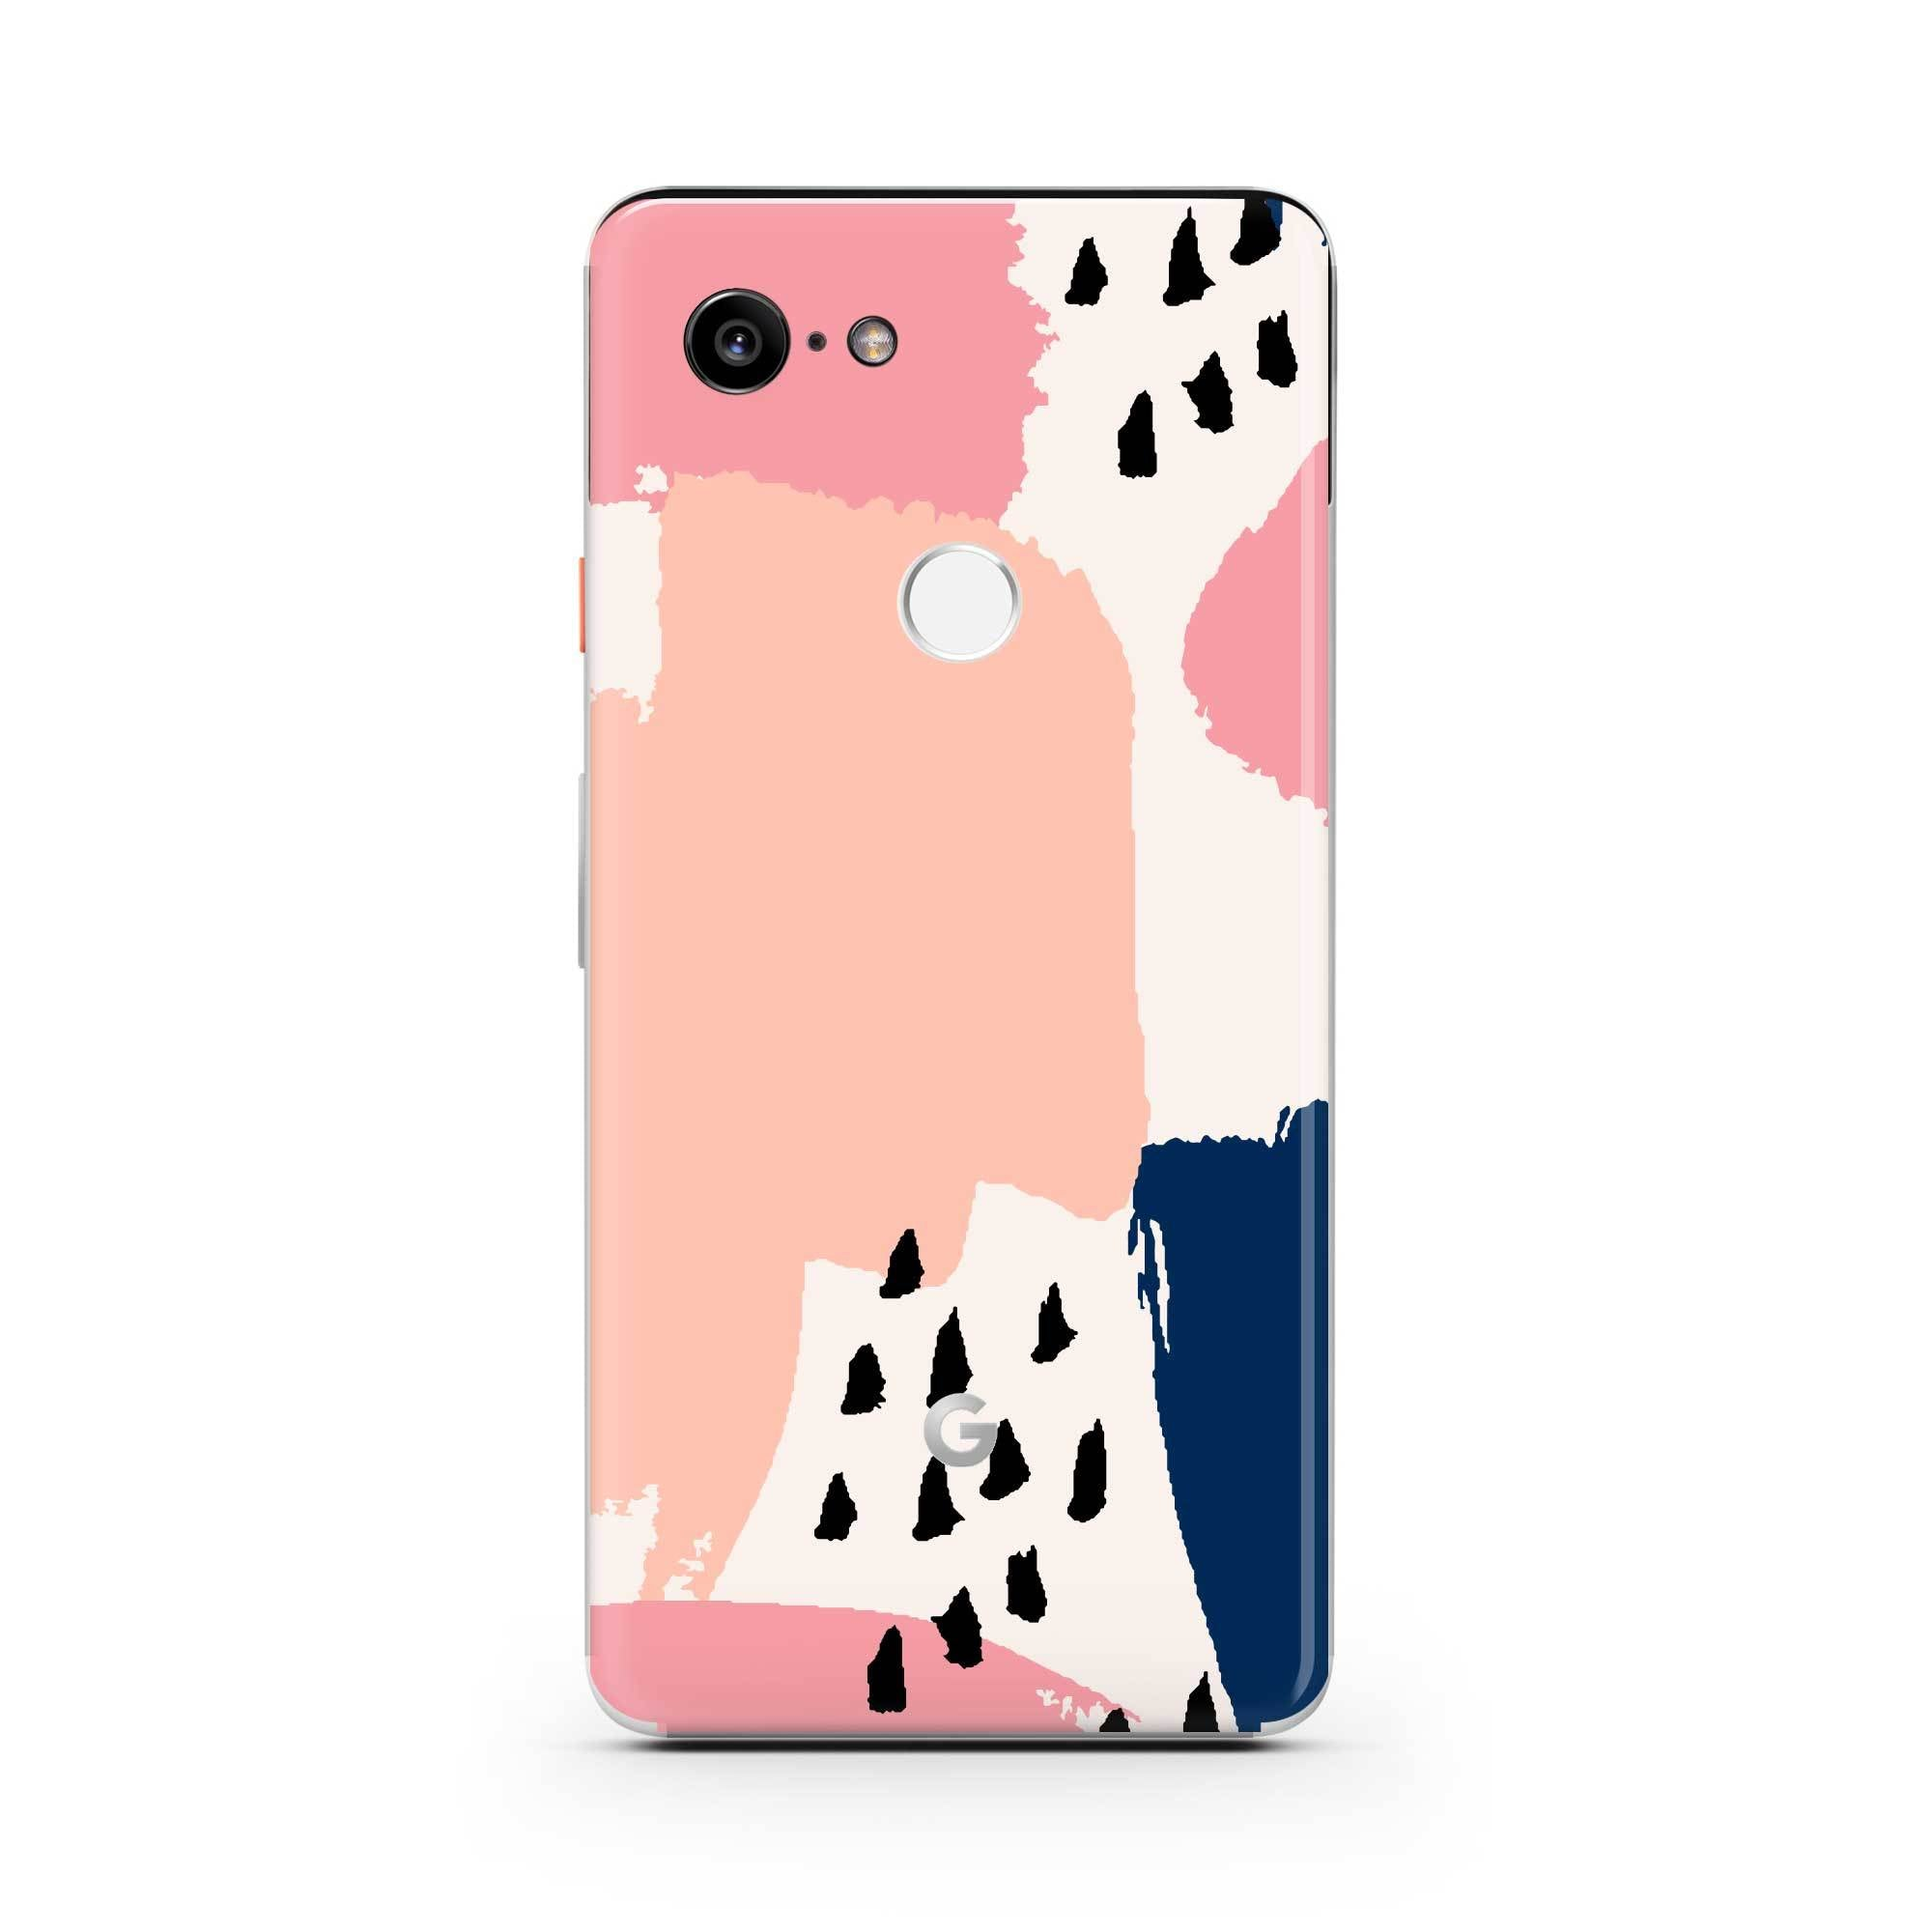 Miami Vice Pixel 3 XL Skin + Case